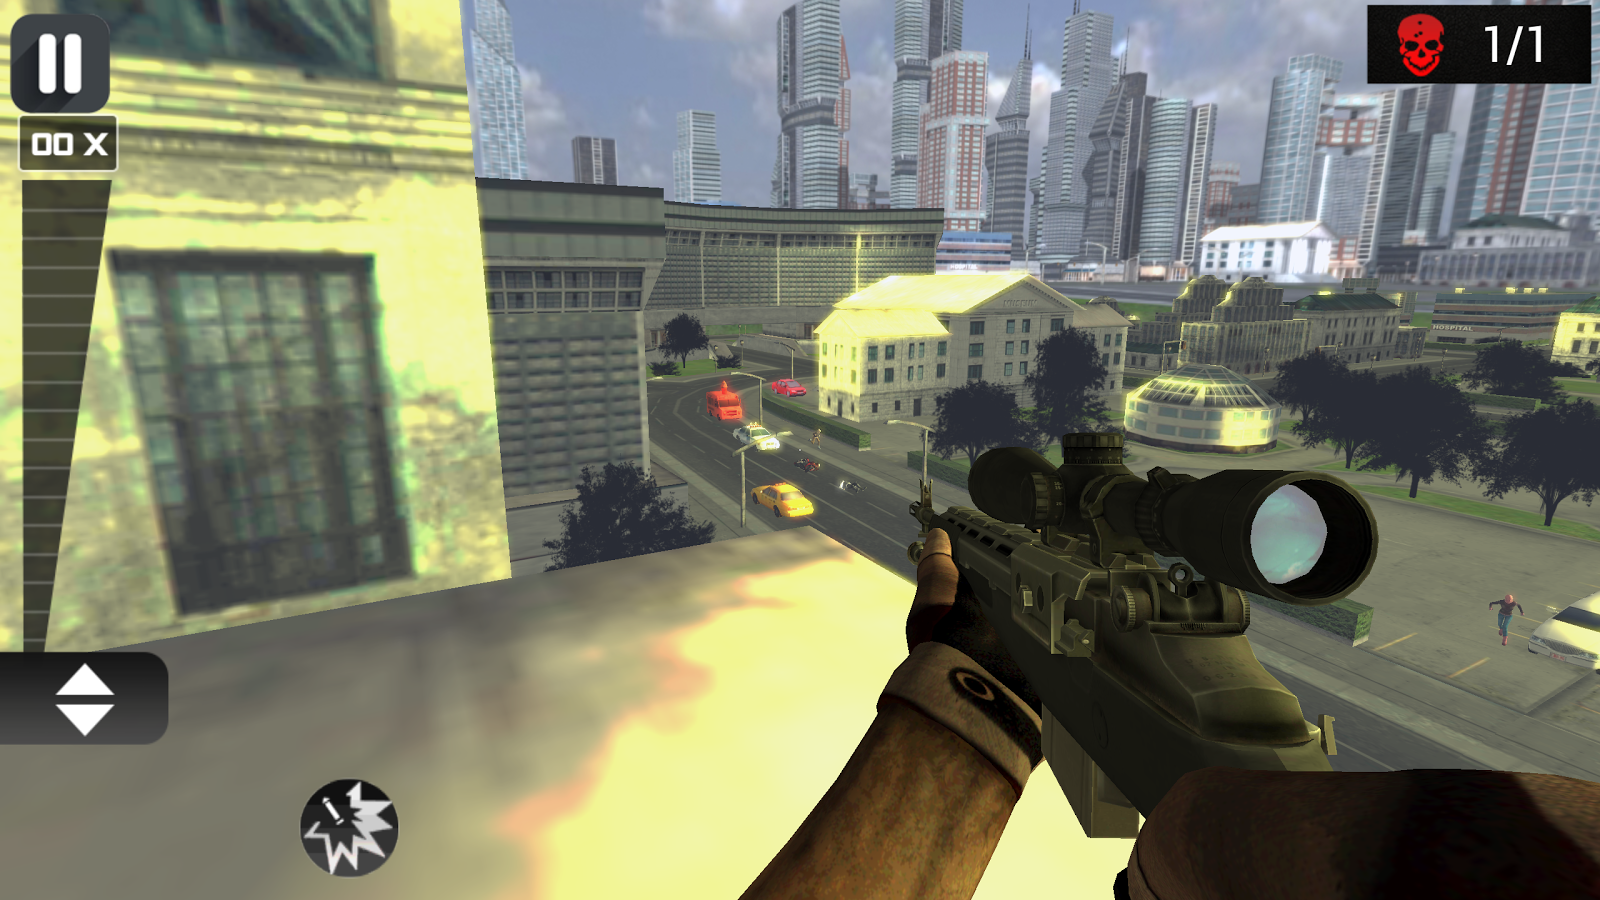 Sniper Terrorist Strike Screenshot 1